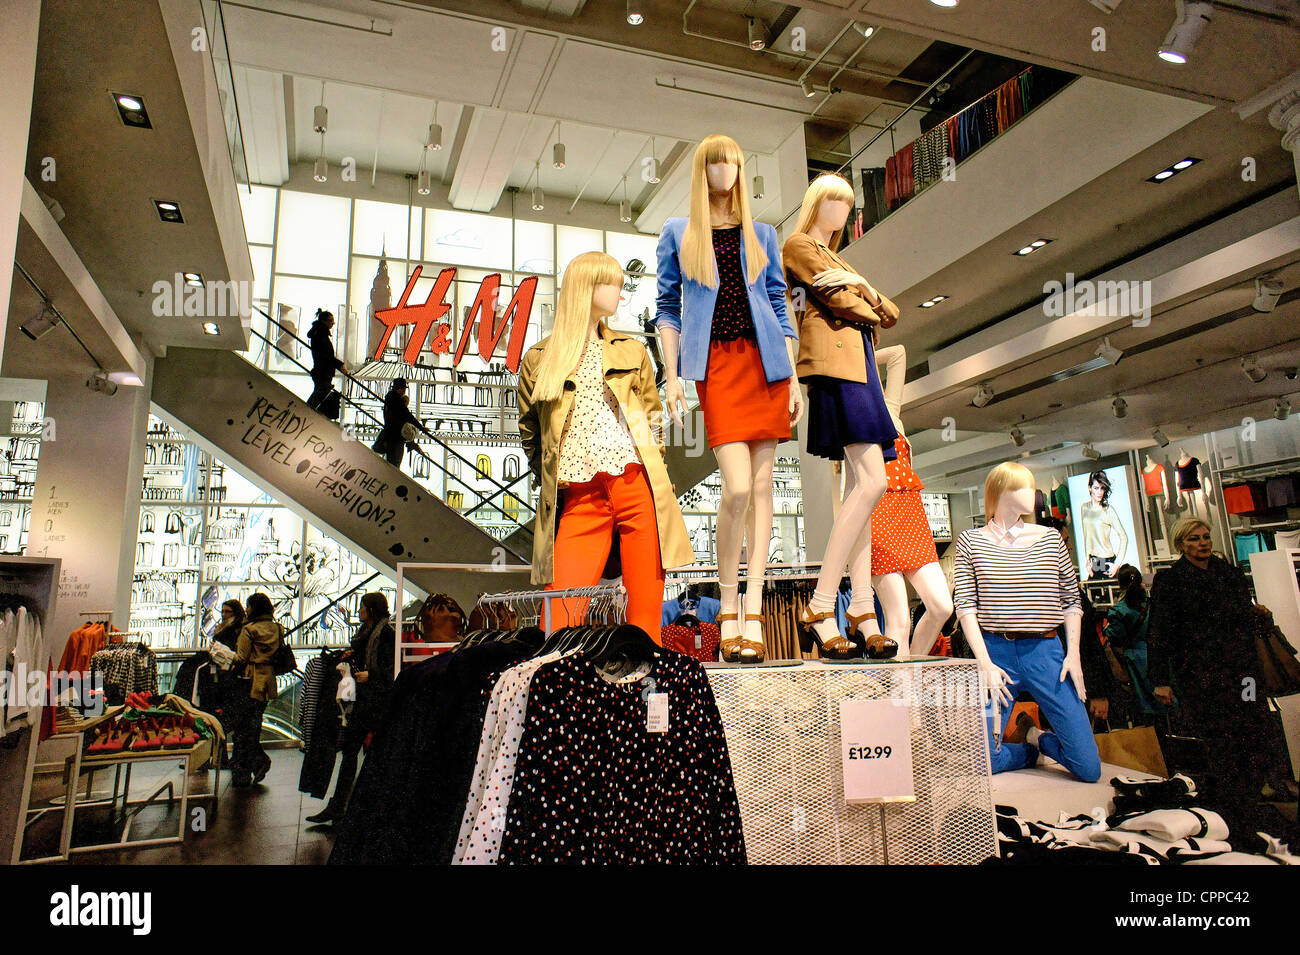 H & M clothing retail Swedish chain store. Womens ladies ...